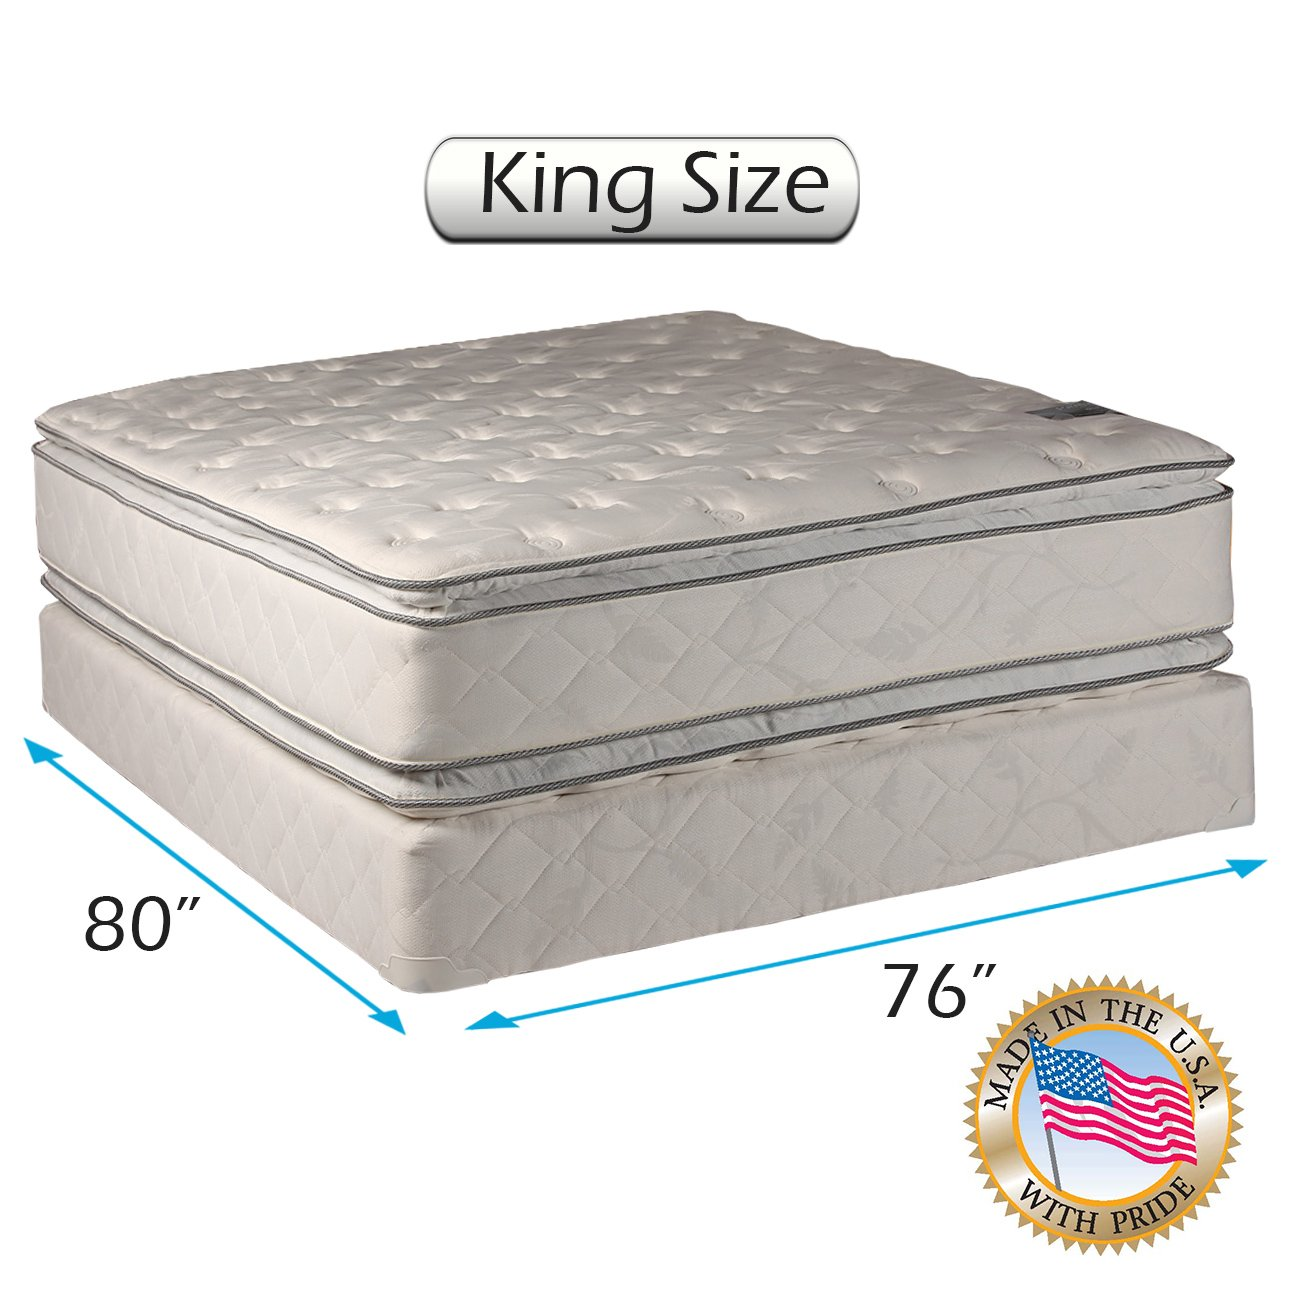 Dream Solutions Pillow Top Mattress and Box Spring Set - Double-Sided Sleep System with Enhanced Cushion Support- Fully Assembled, Great for Your Back, longlasting Comfort (King - 76''x80''x12'')